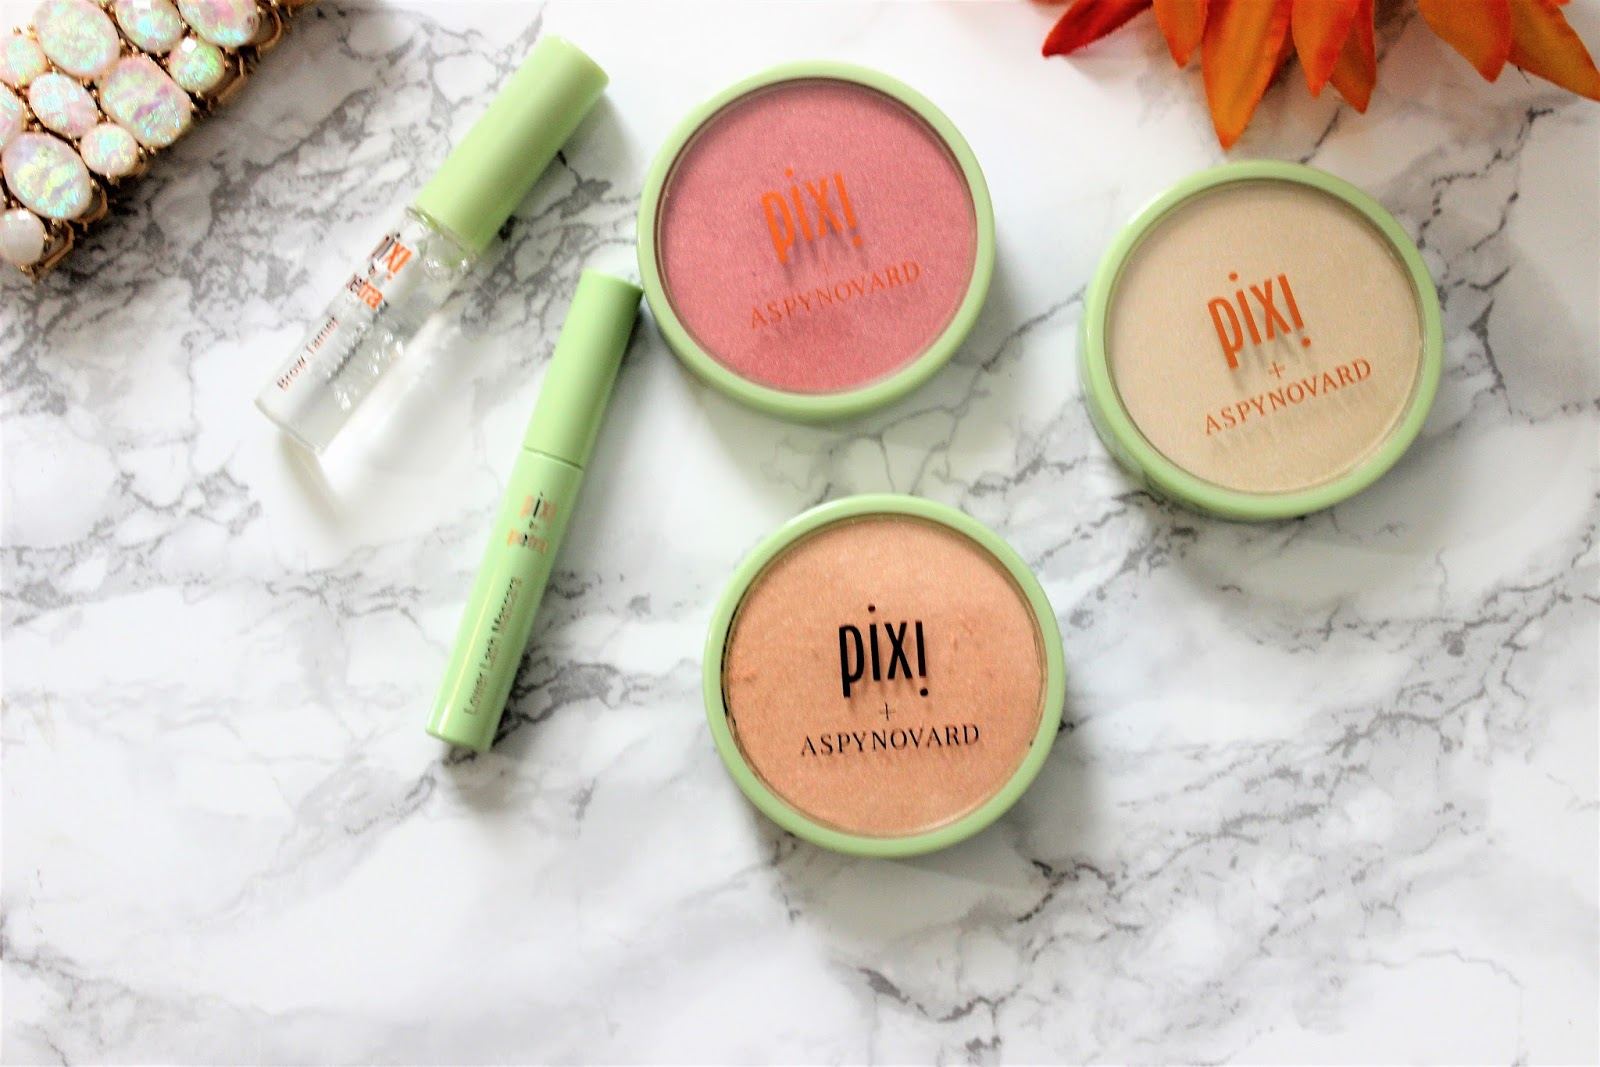 Pixi x Aspynovard Collab Review